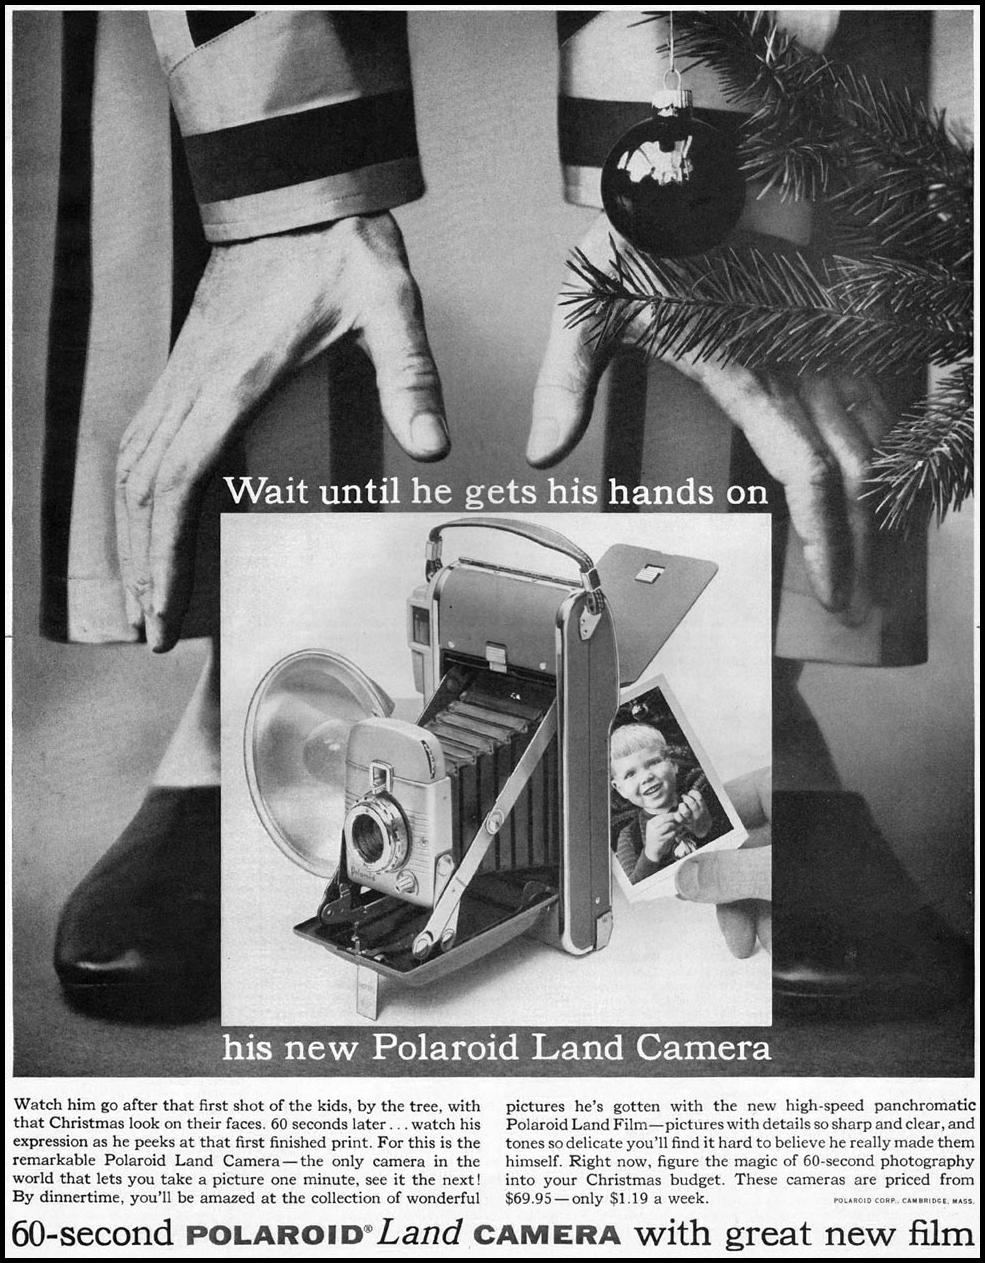 POLAROID LAND CAMERA SATURDAY EVENING POST 12/10/1955 p. 106